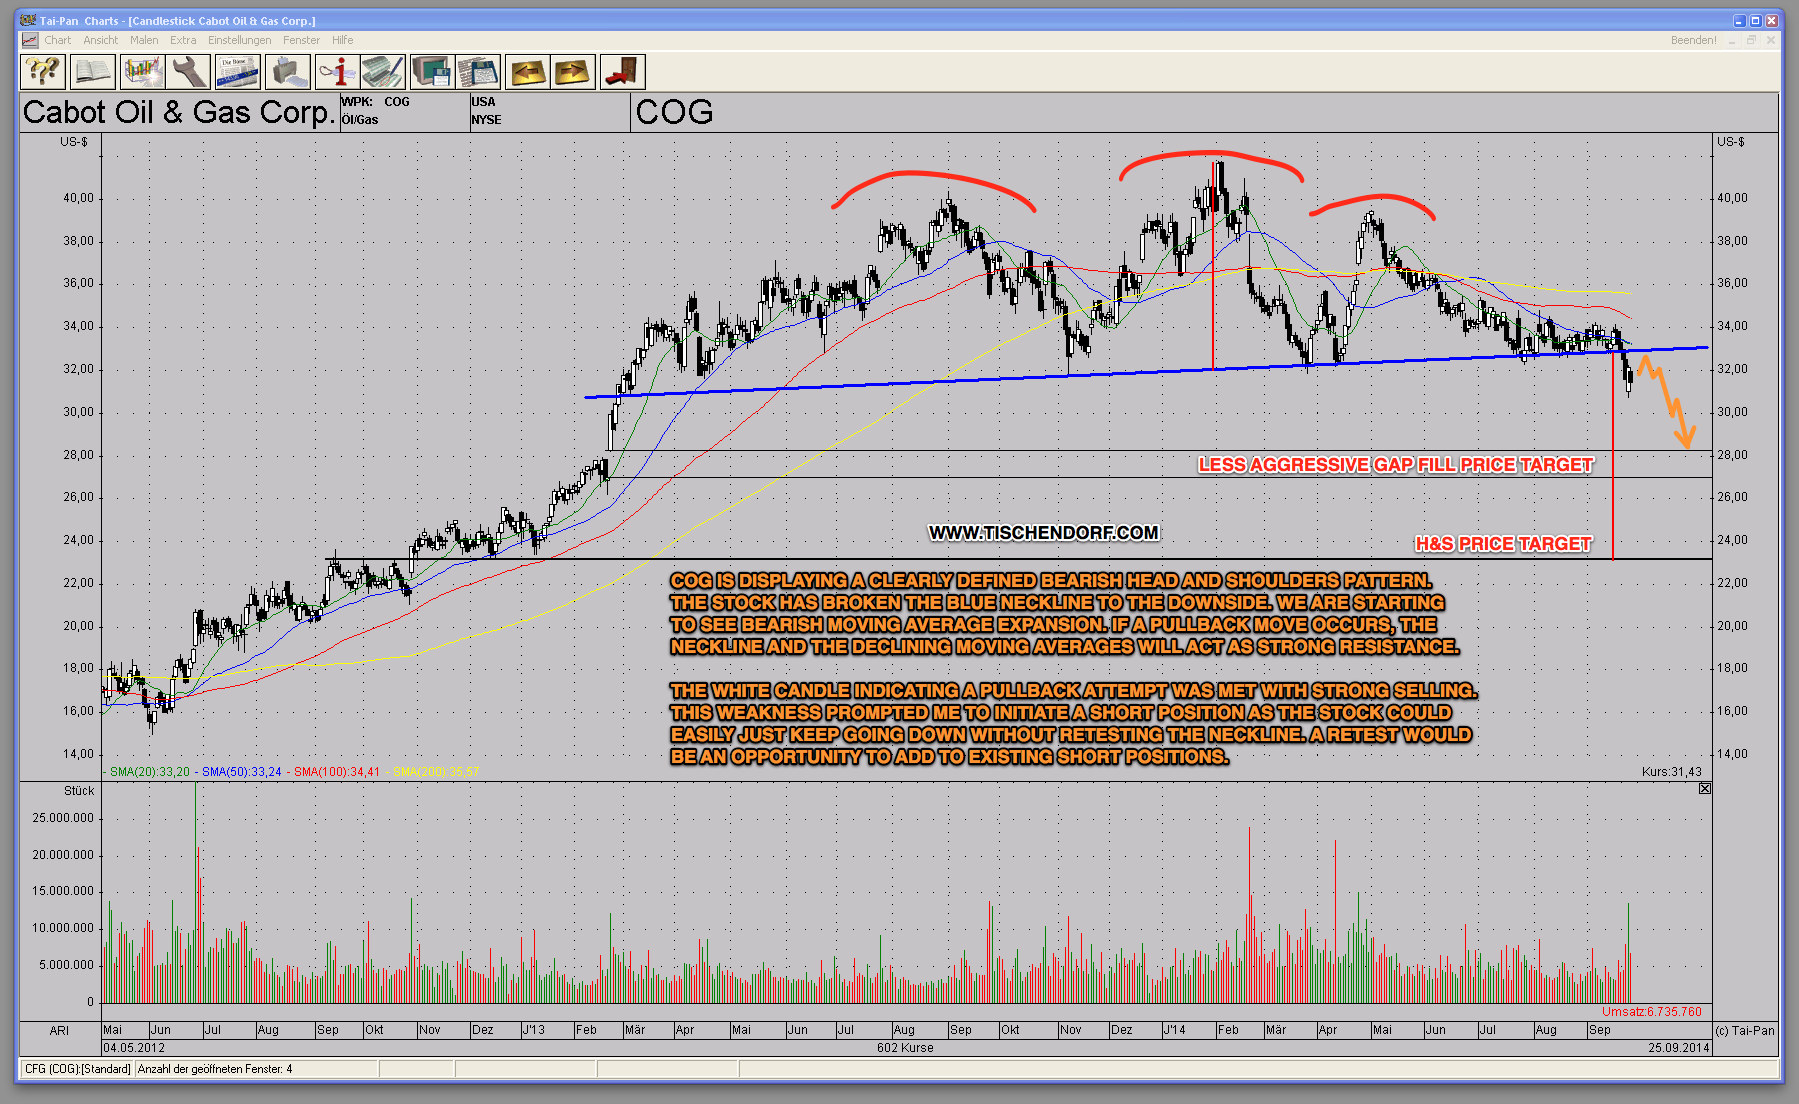 COG Cabot Oil & Gas – Stock With Bearish Head And Shoulders